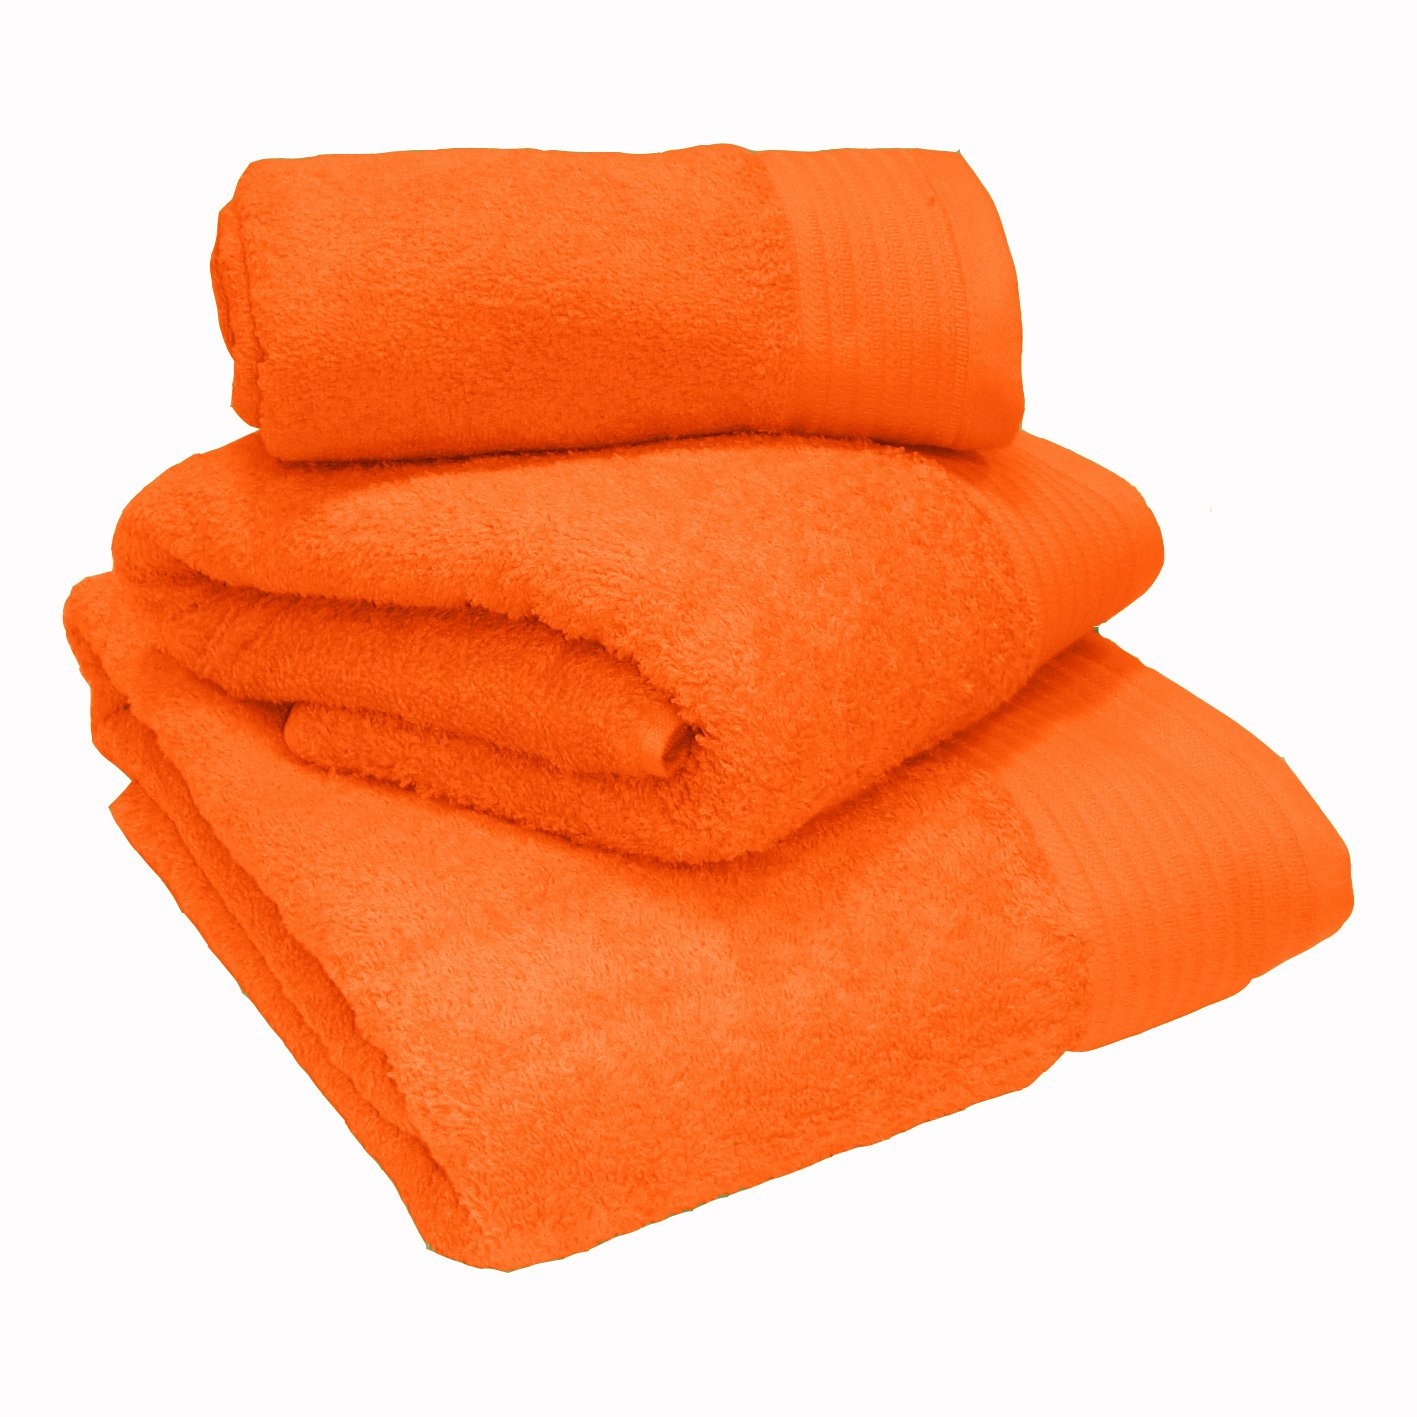 Luxury 100% Egyptian Cotton Tangerine Towels Face Cloth 30x30cm Yorkshire Linen